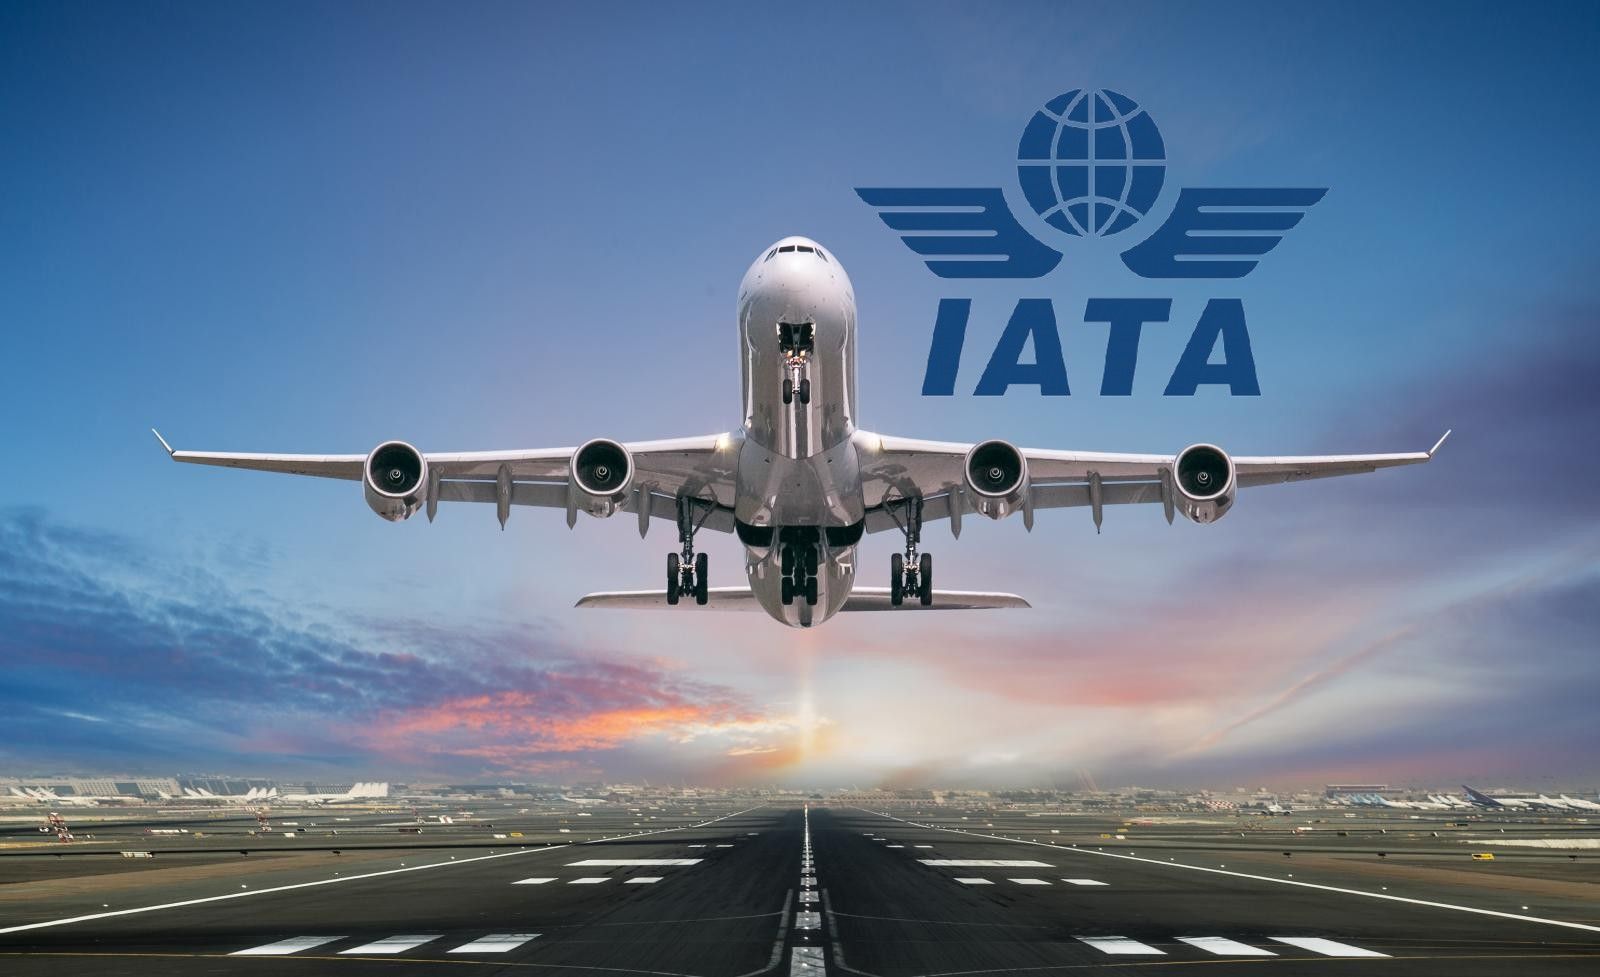 Aircraft and IATA logo